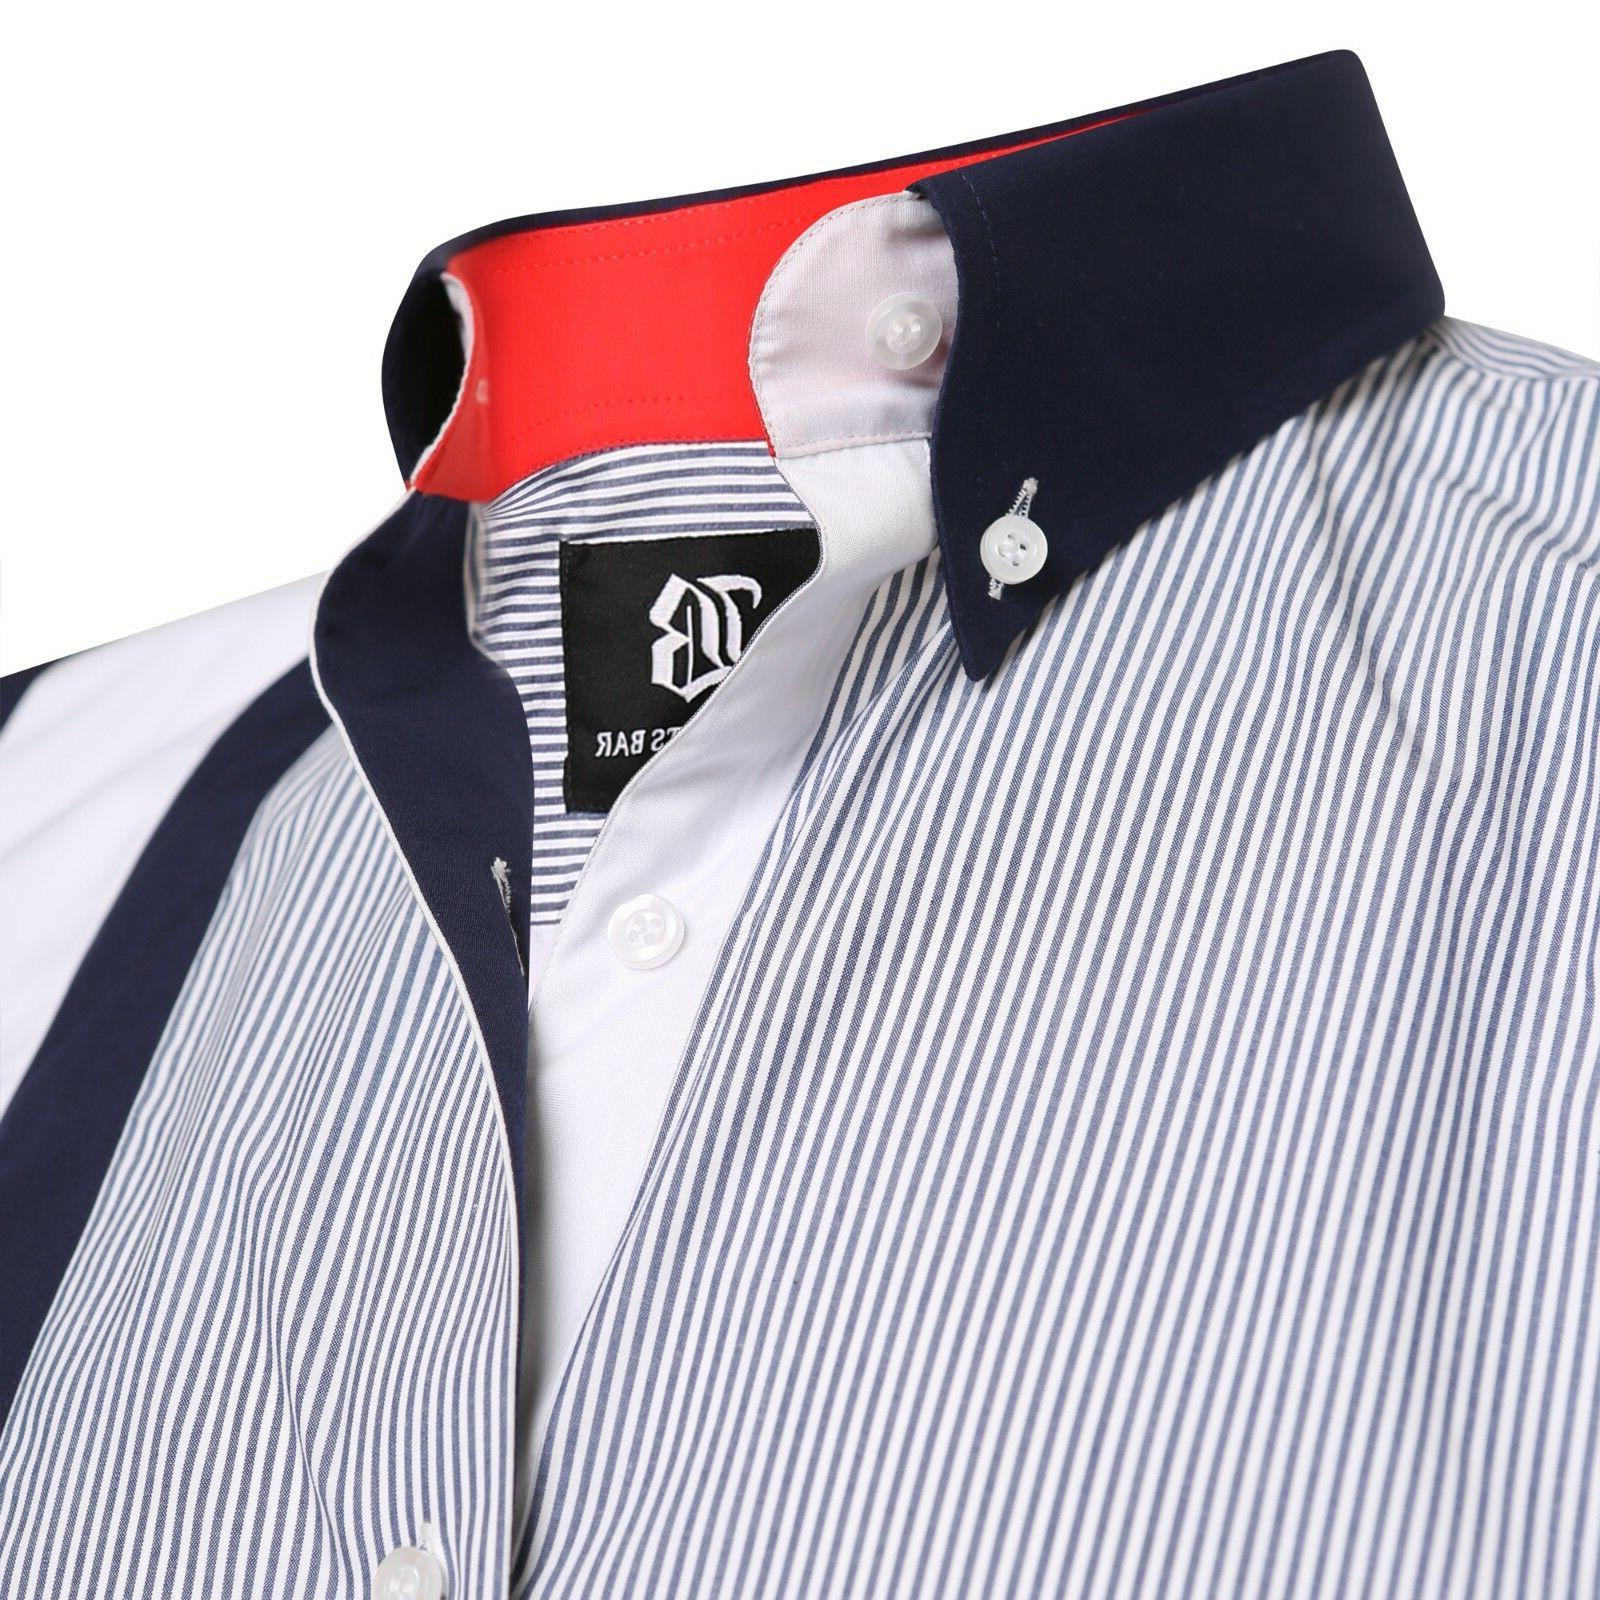 Men's Stripe Italian Dress Designer Luxury Shirts Casual